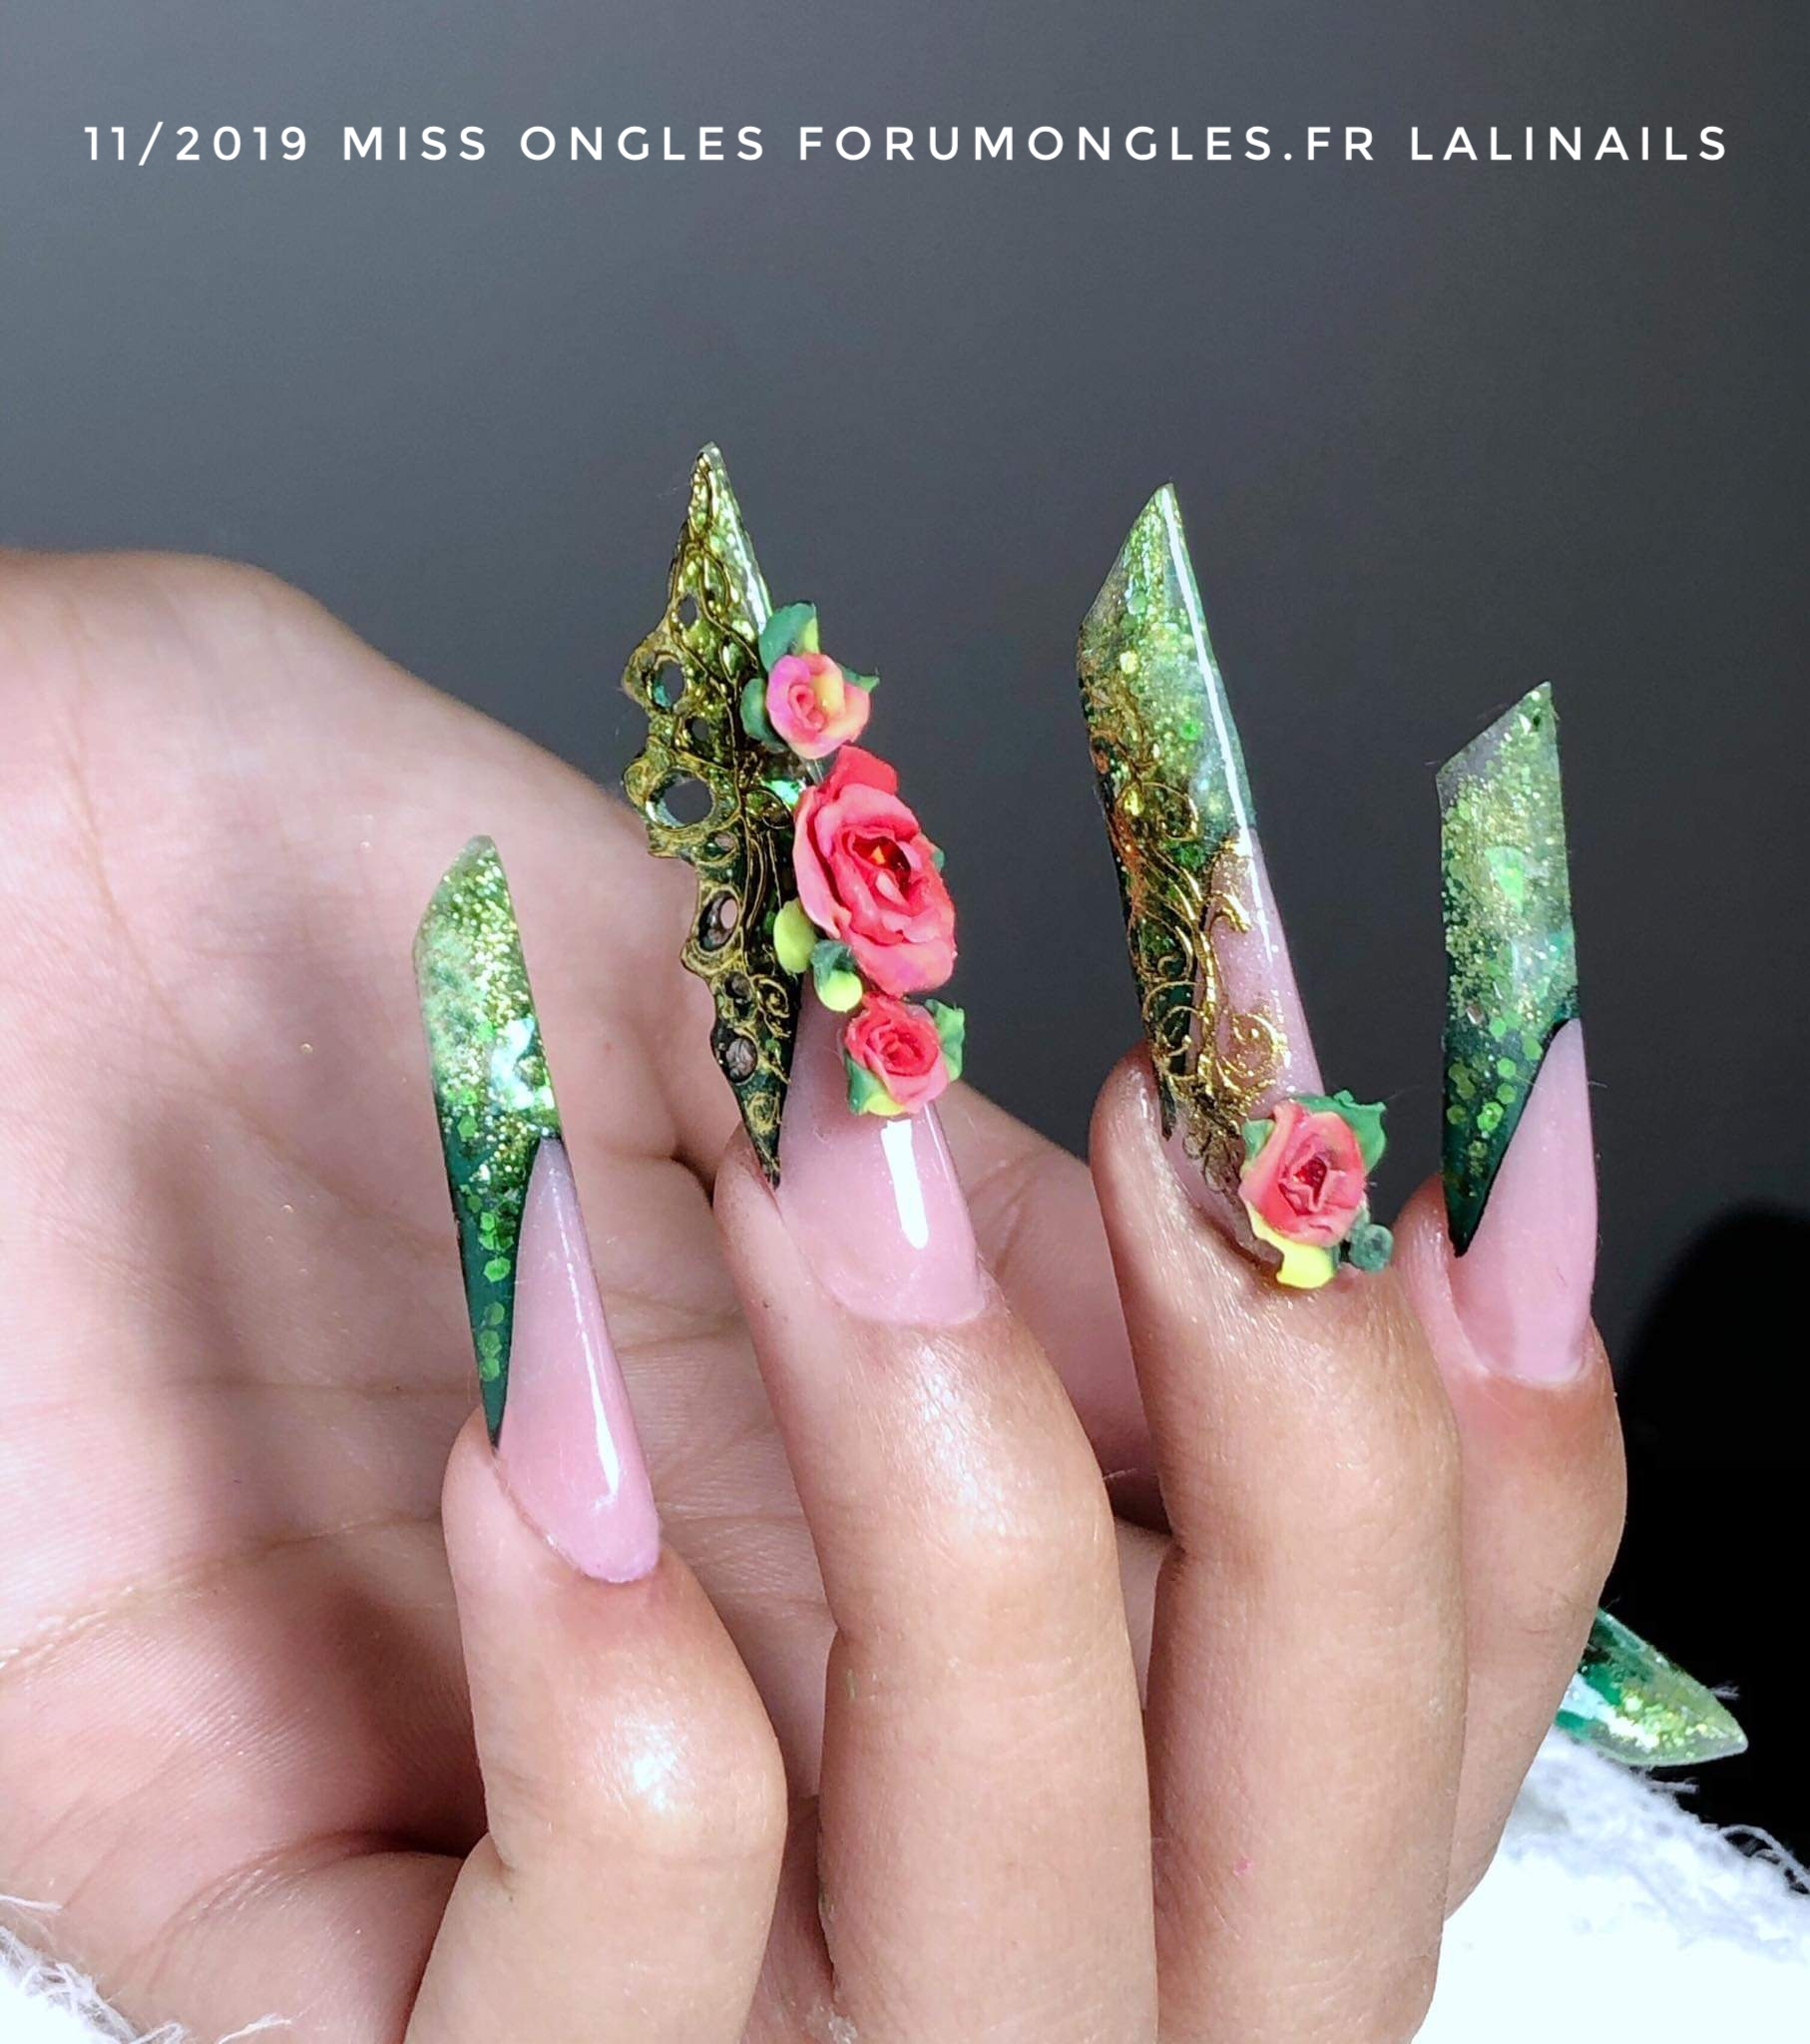 miss-ongles-hors-concours-ed1.jpeg